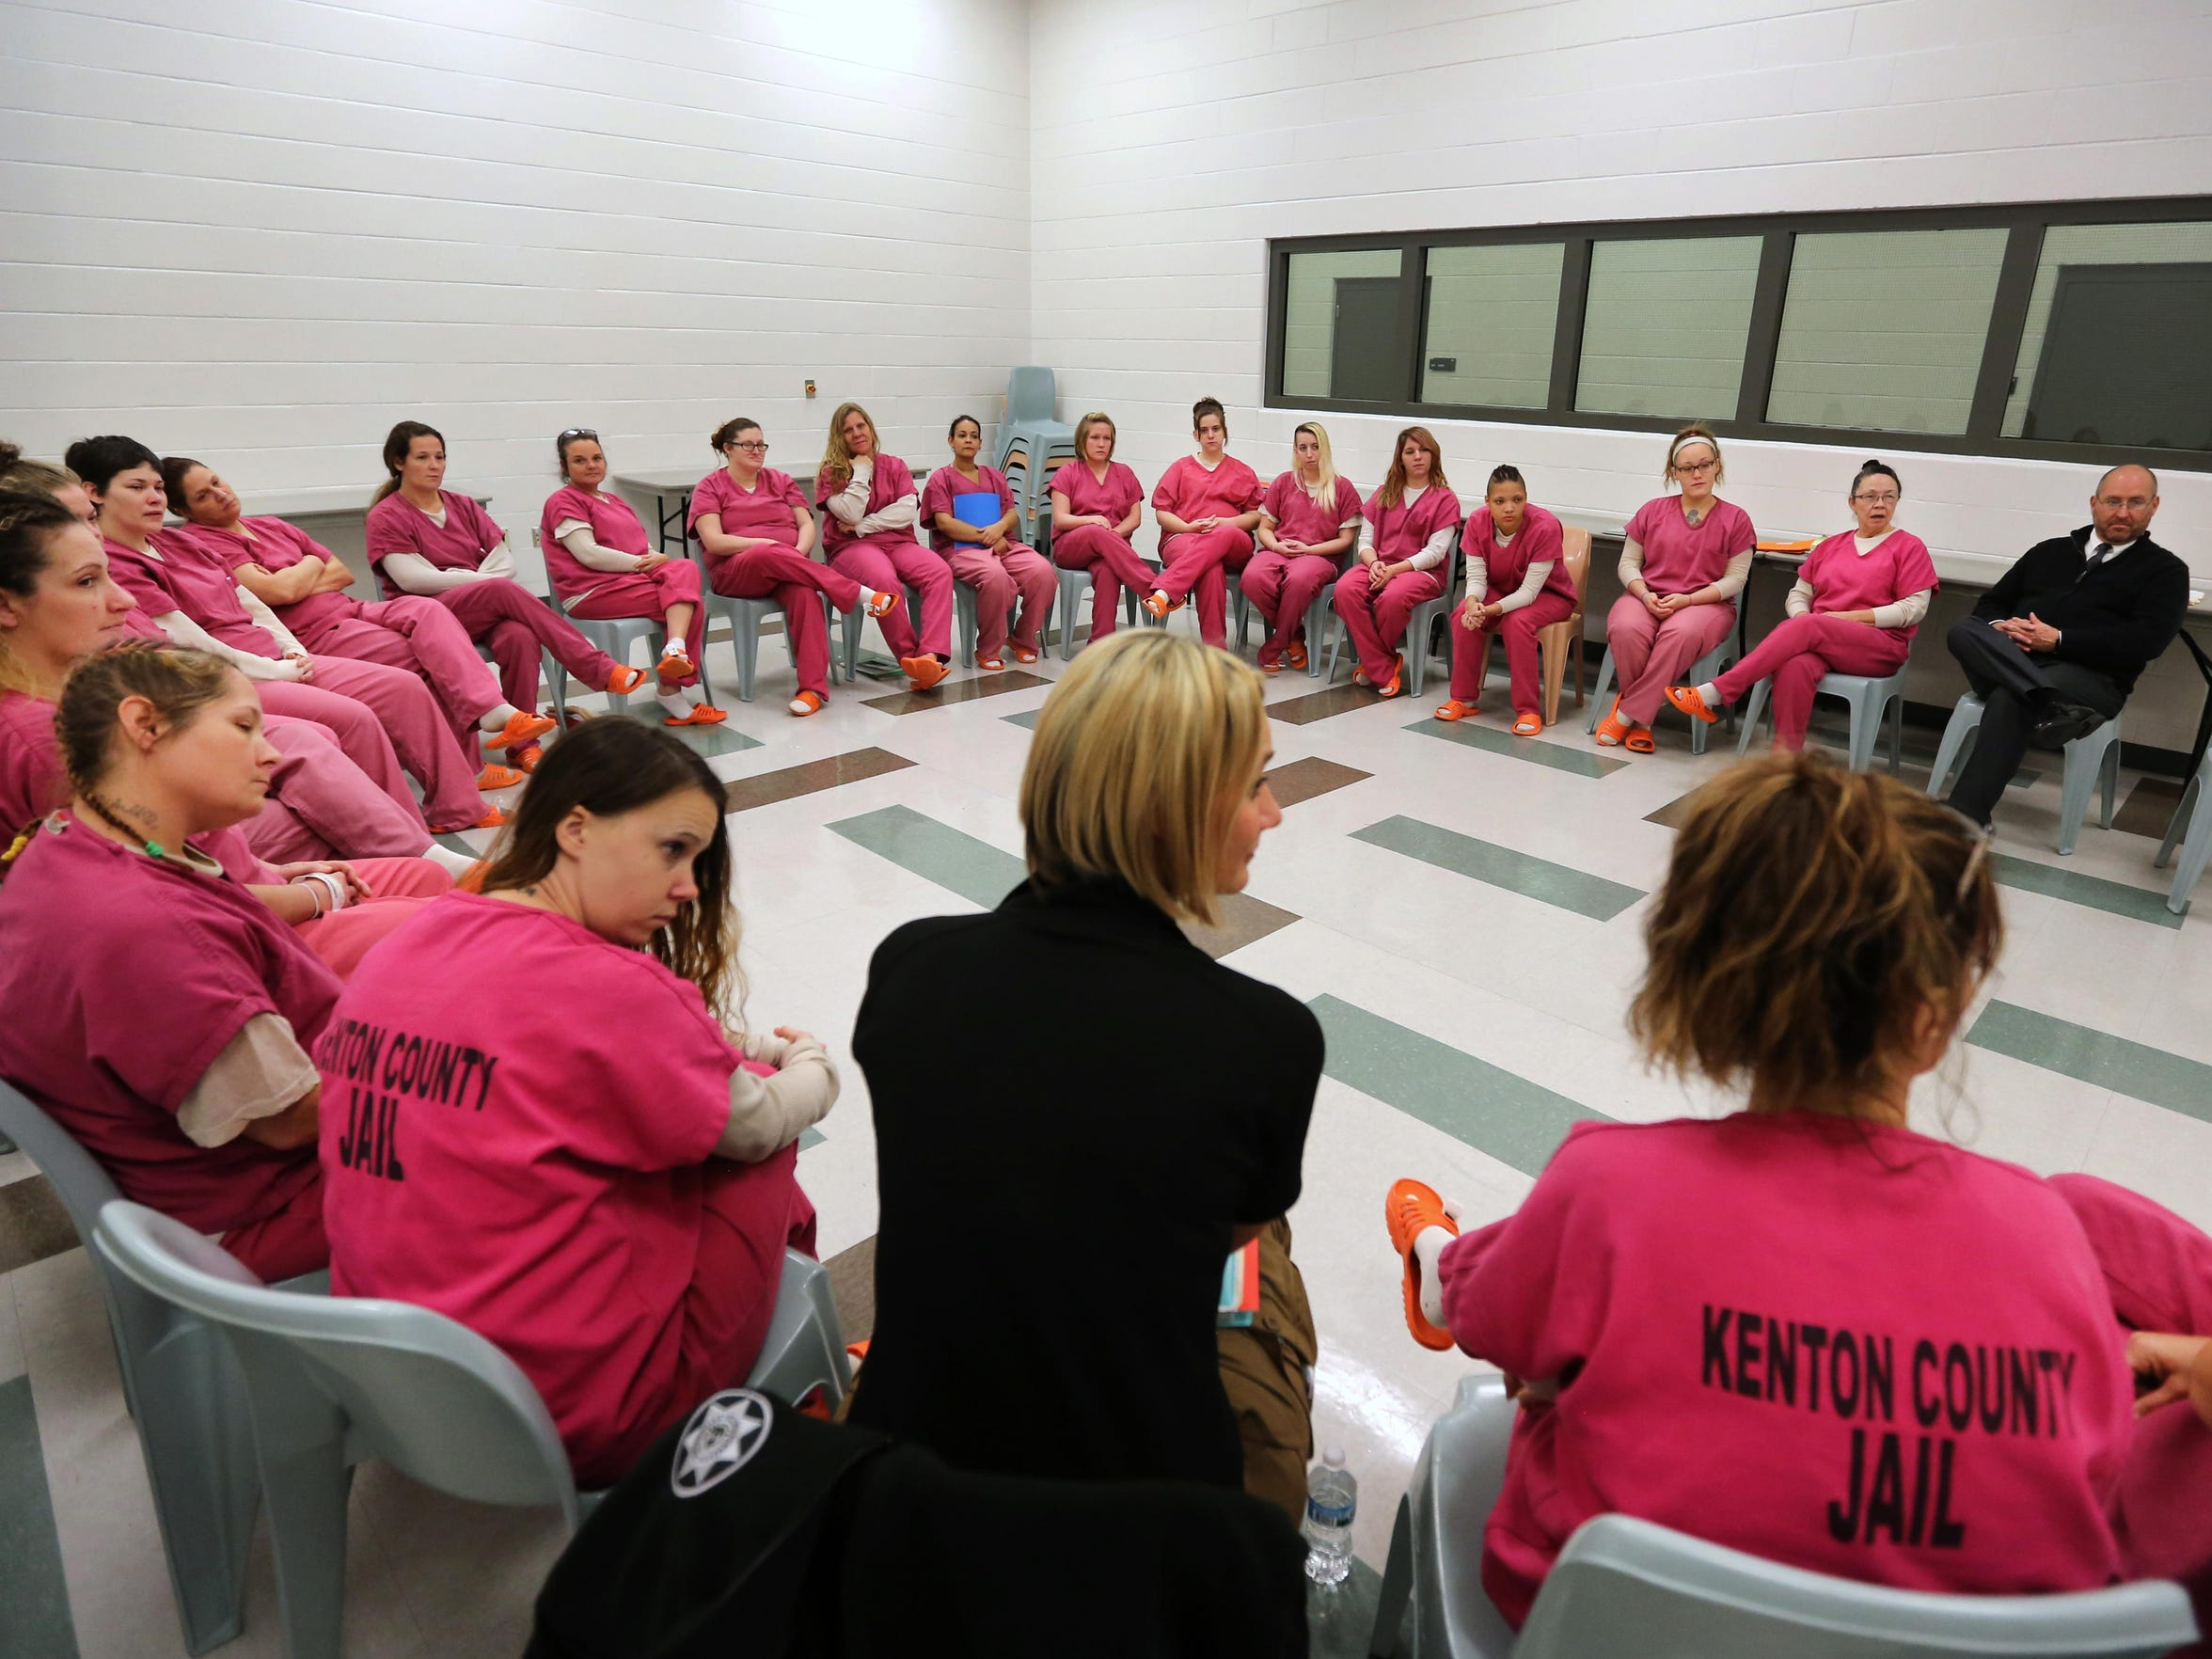 Dominique participates in a group session in a treatment